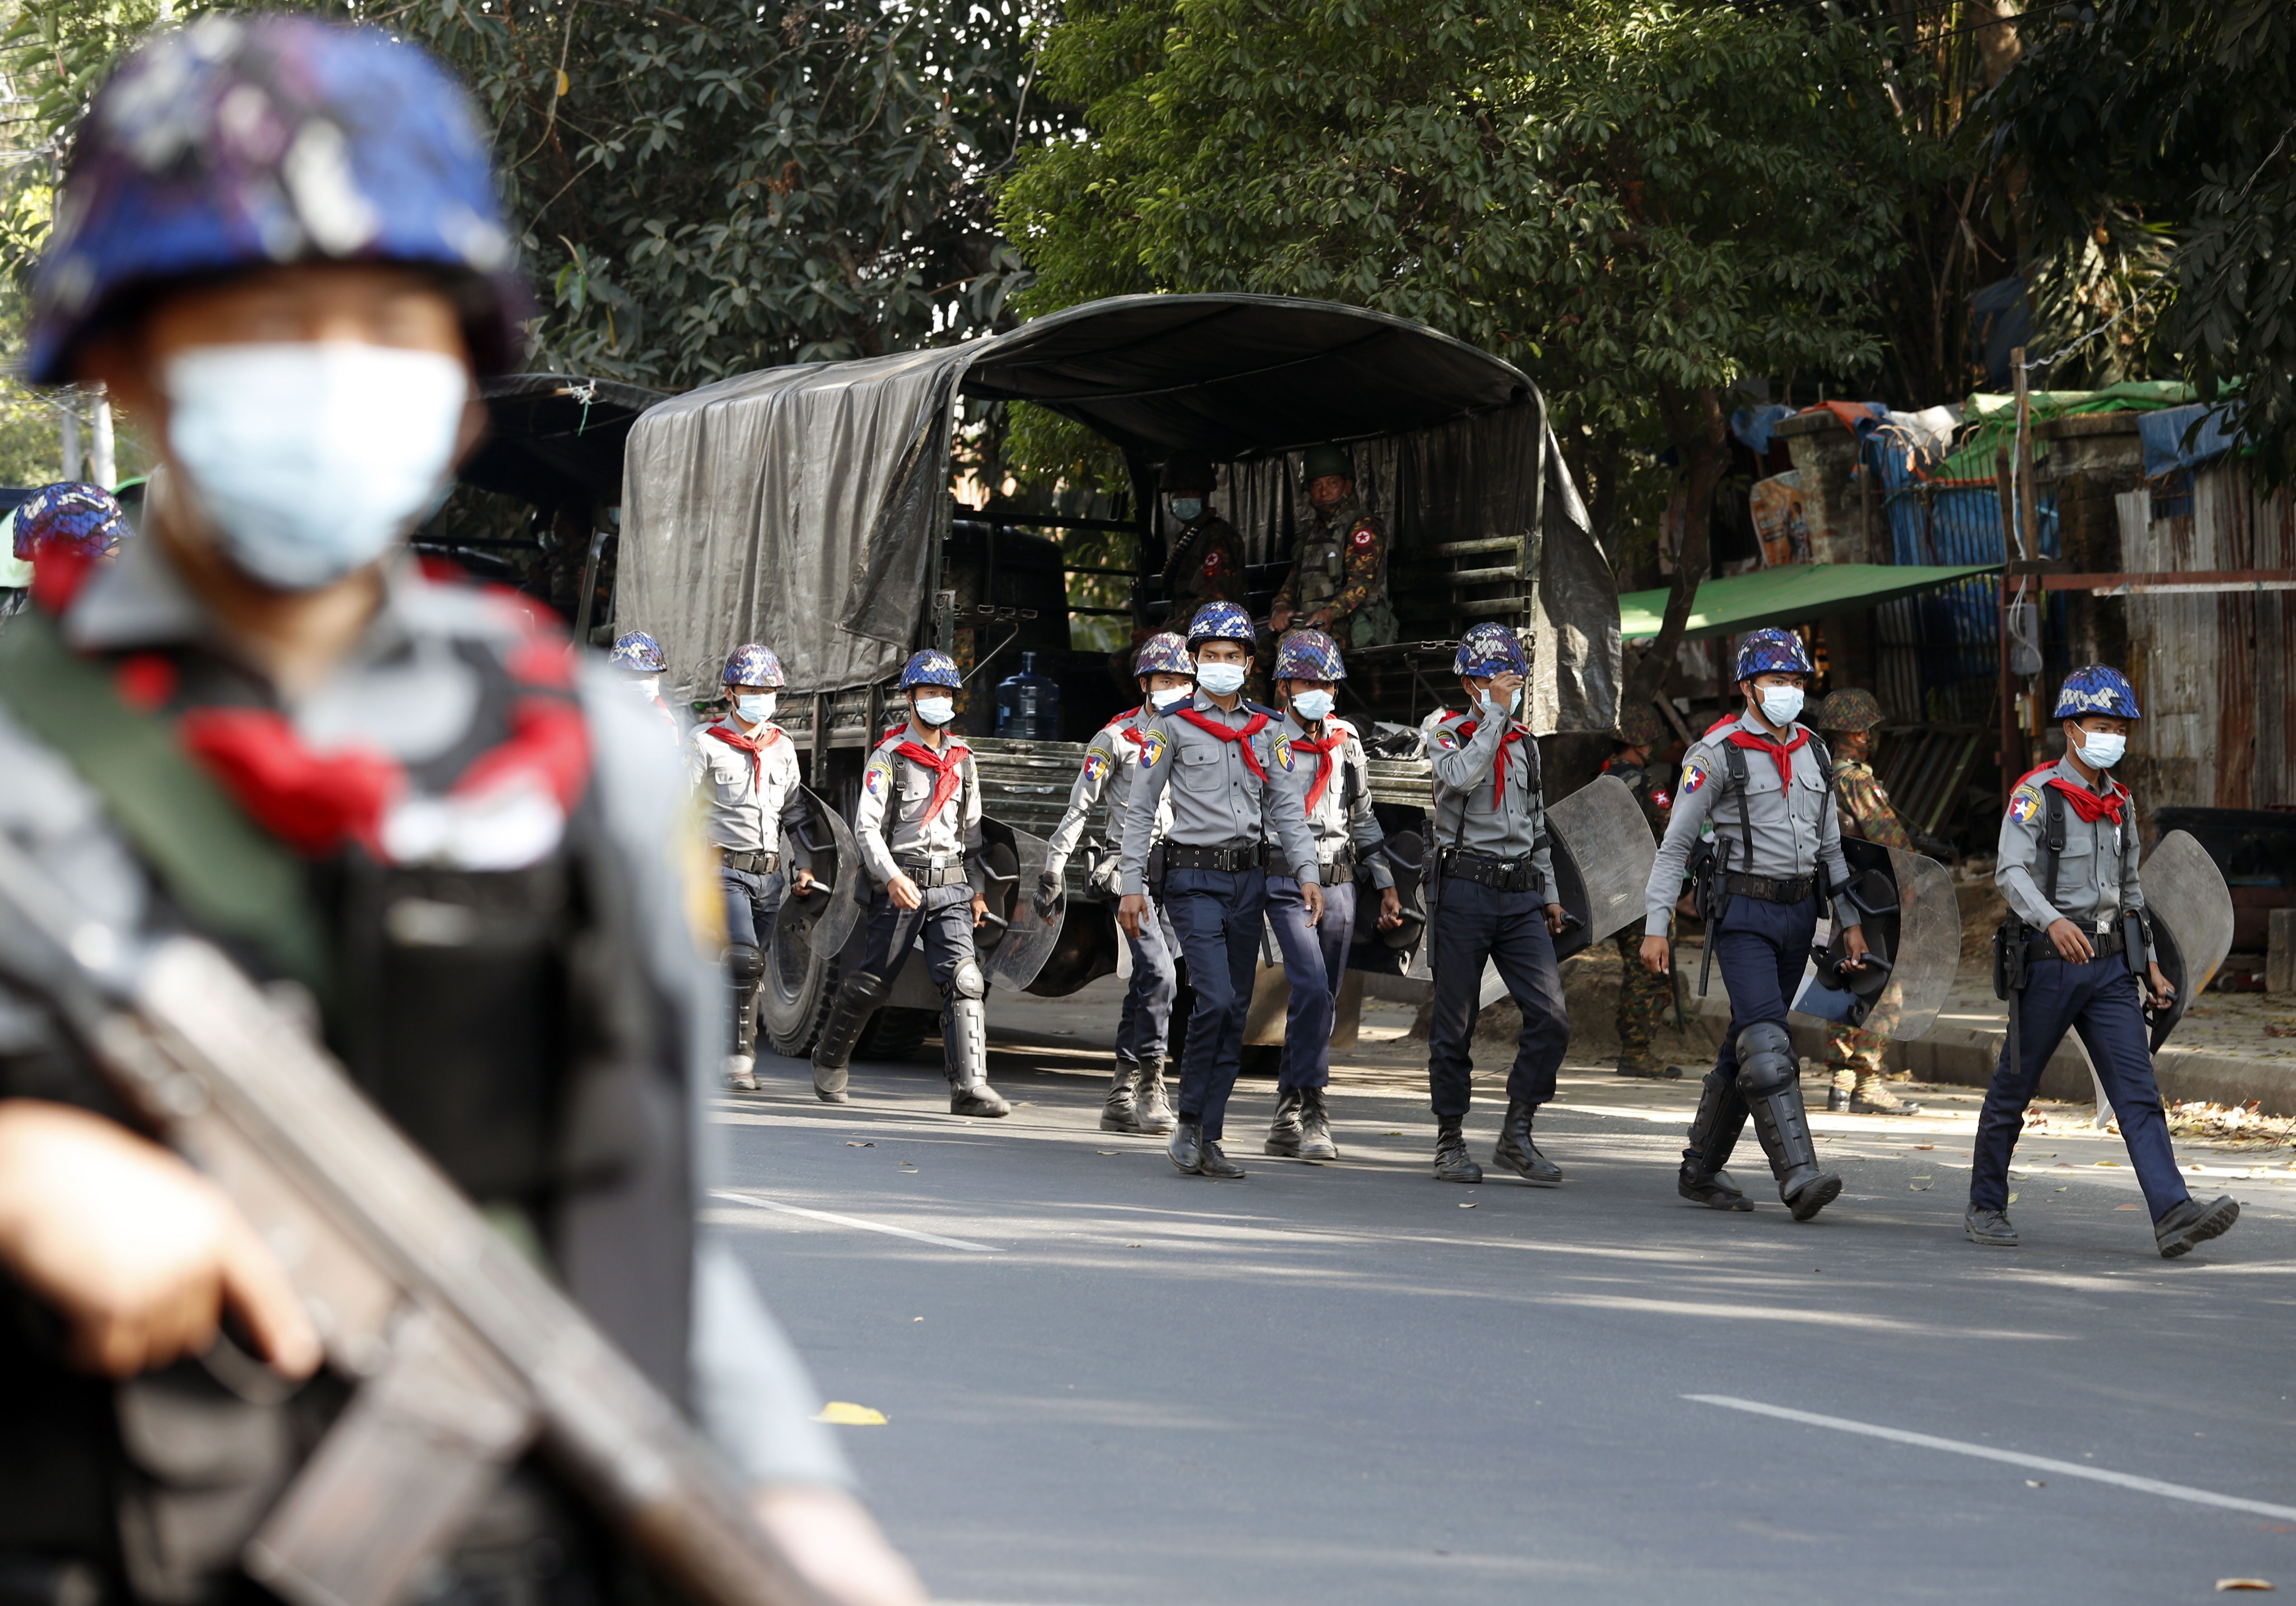 Soldiers deployed in the streets of Rang